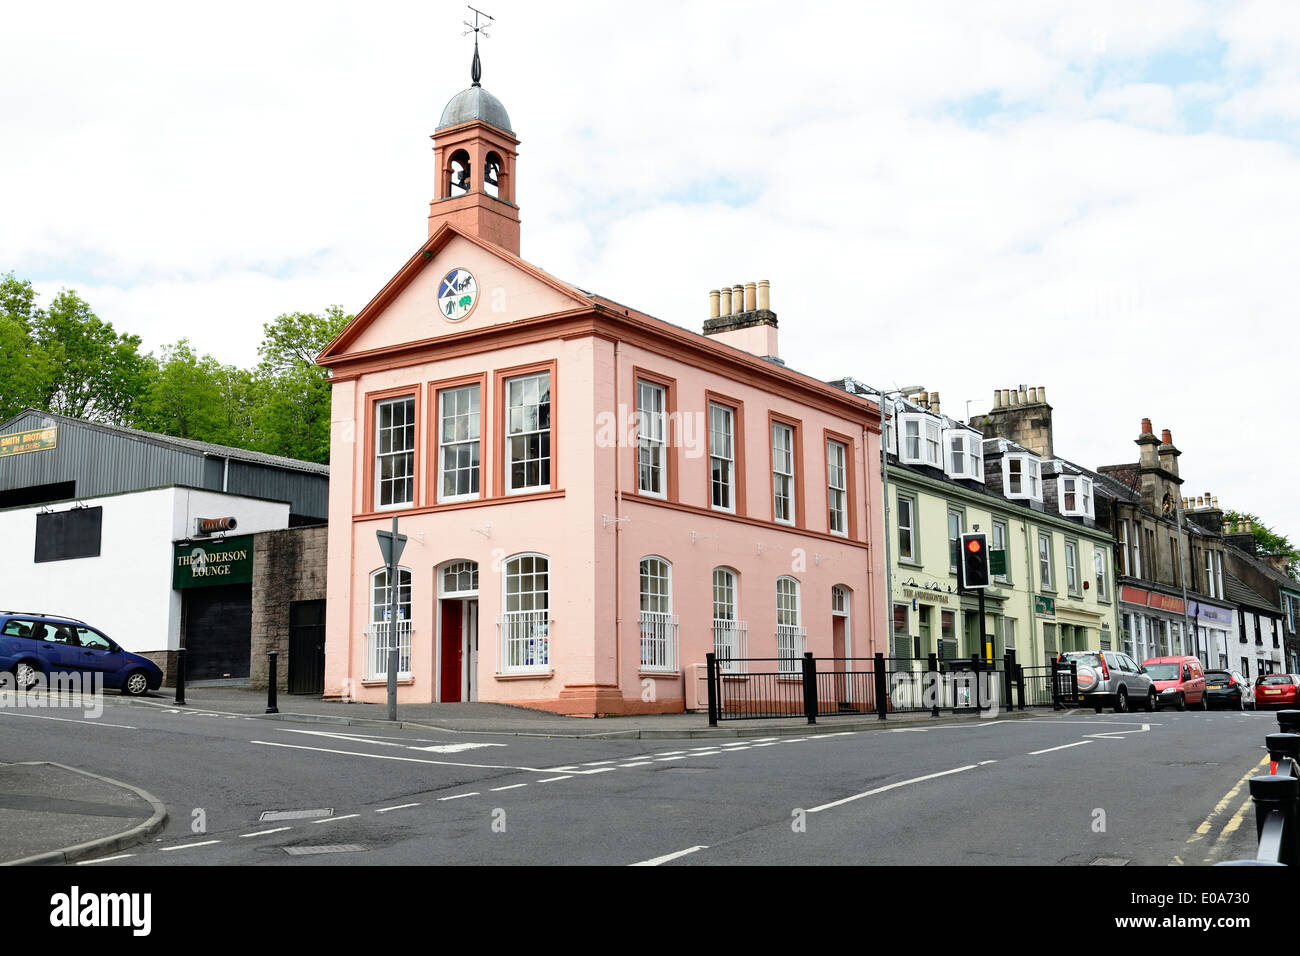 The Townhouse in Beith, North Ayrshire, Scotland, UK - Stock Image